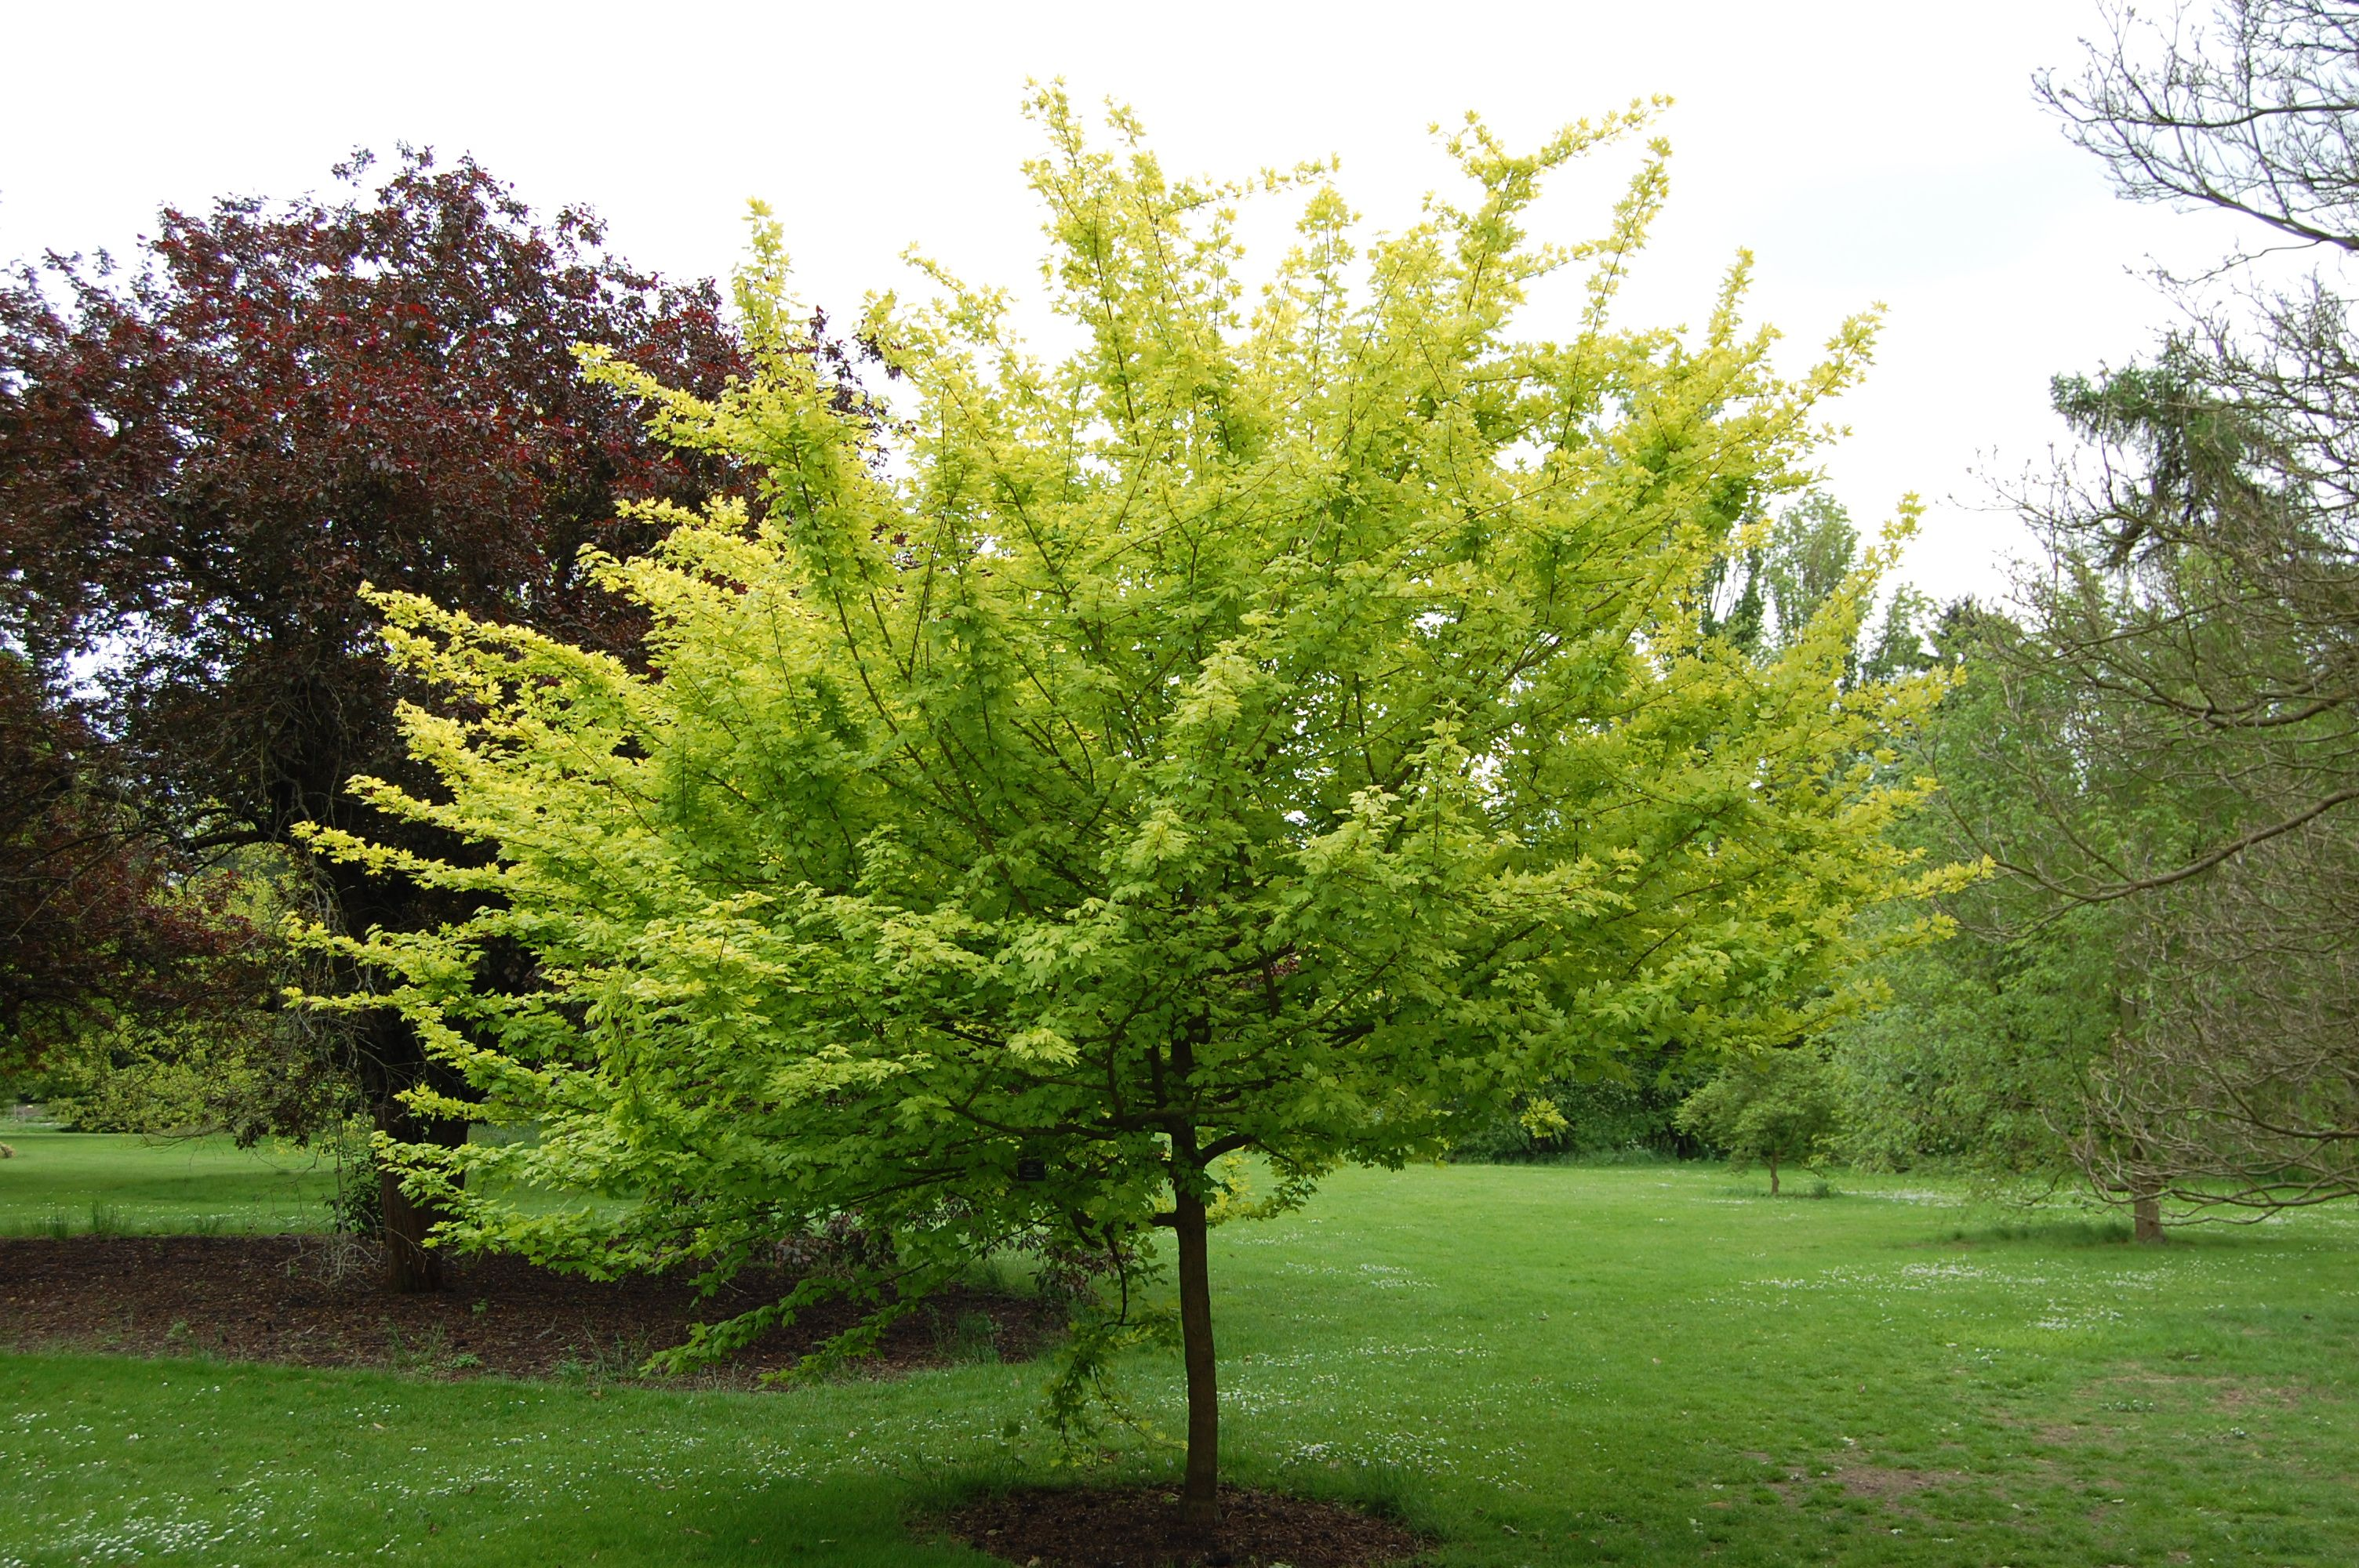 Acer campestre | Trees | Pinterest | Acer, Deciduous trees and Plants